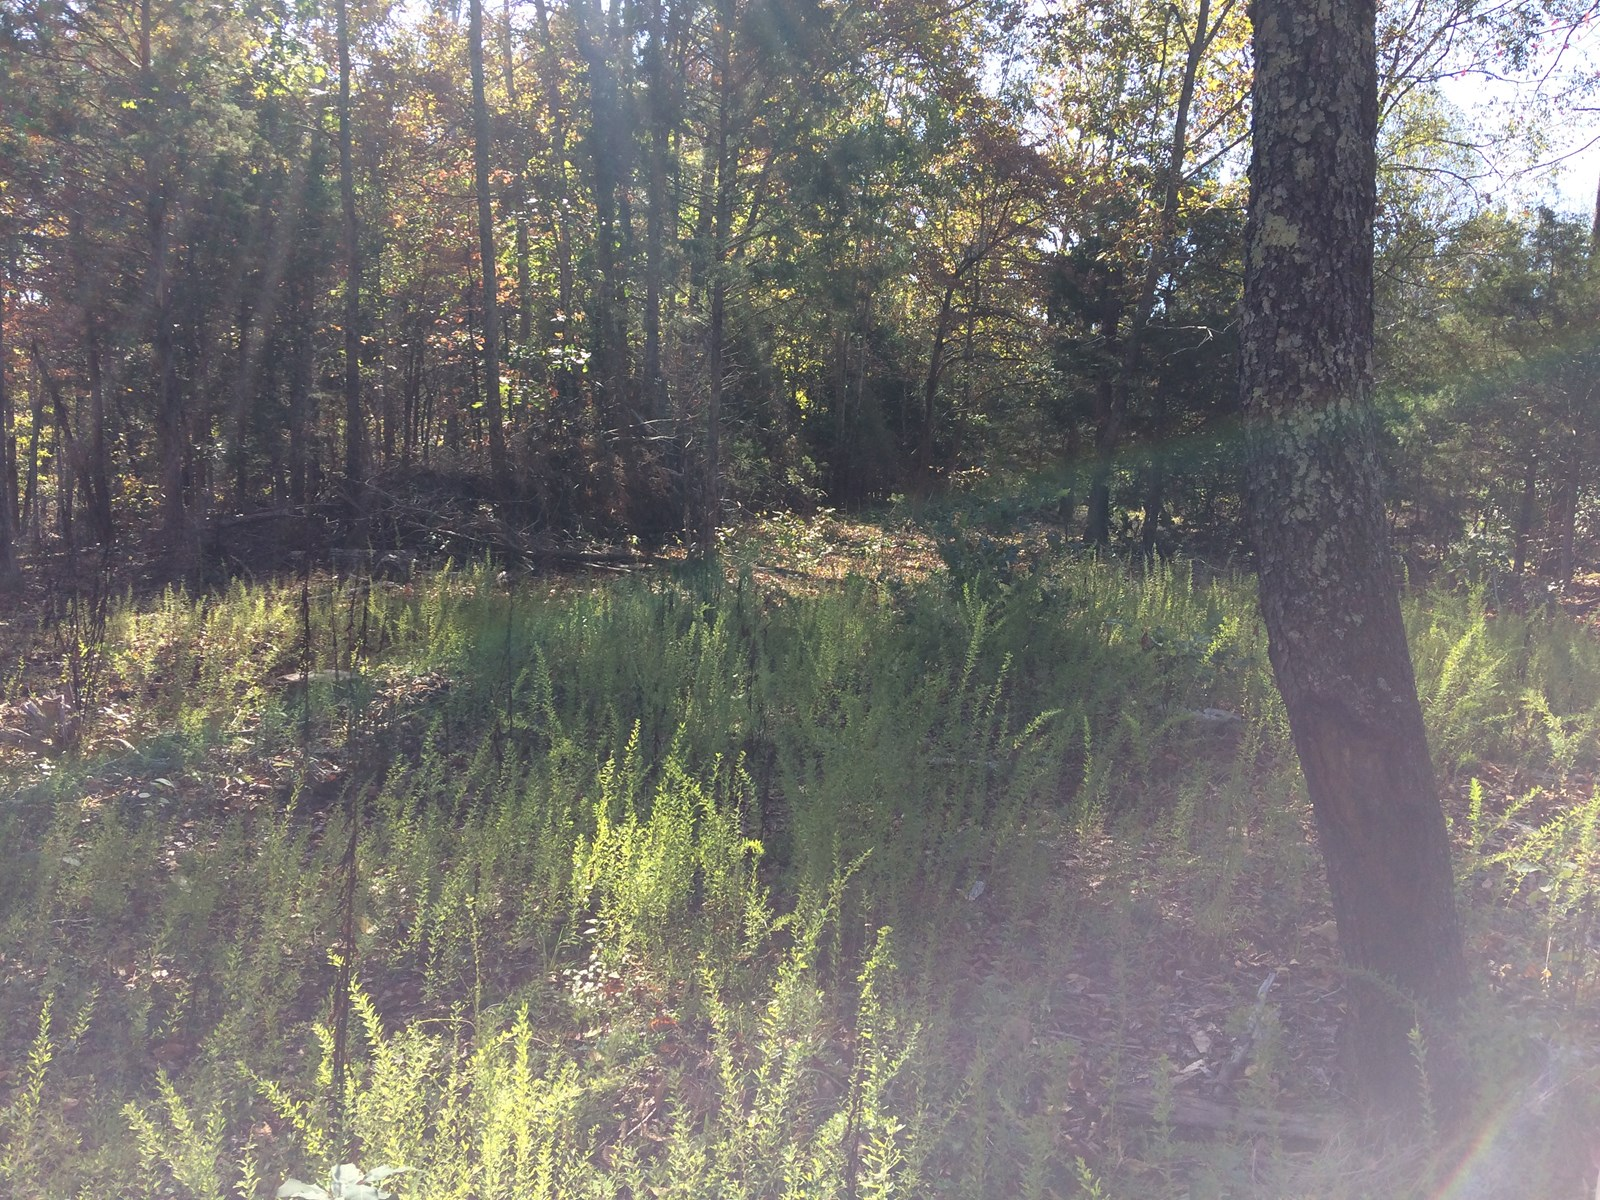 20 ACRES WOODED LAND NEAR MAURY COUNTY TN